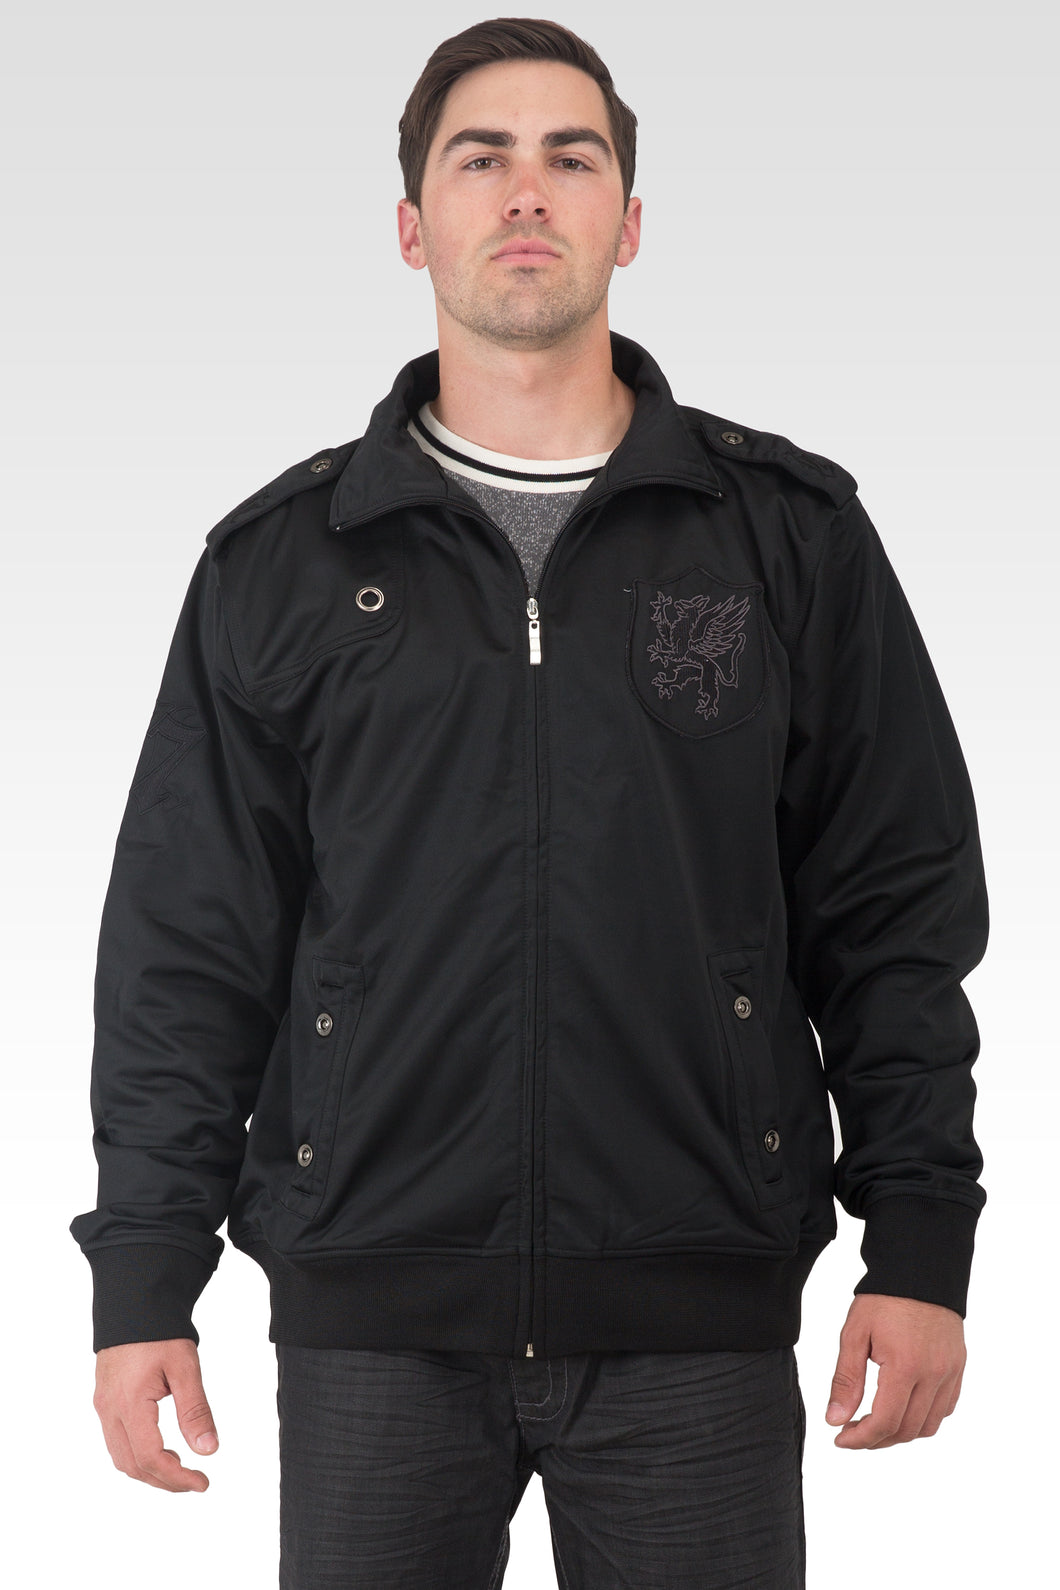 Men's Black Poly Performance Full Zip Track Jacket With Black EMB Patches